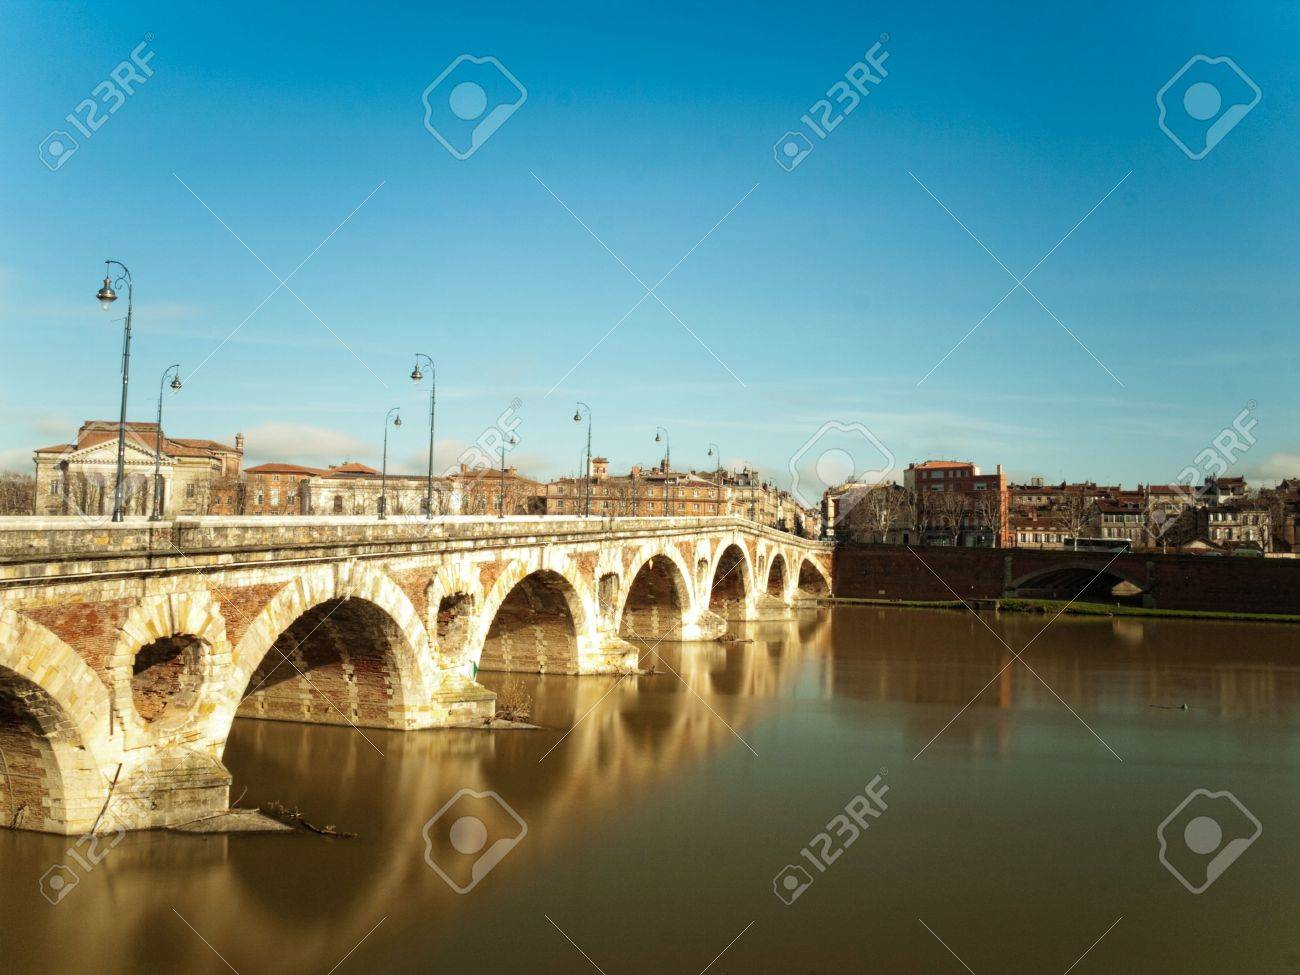 Pont neuf bridge over the garonne in the city of Toulouse in France Stock Photo - 6292574